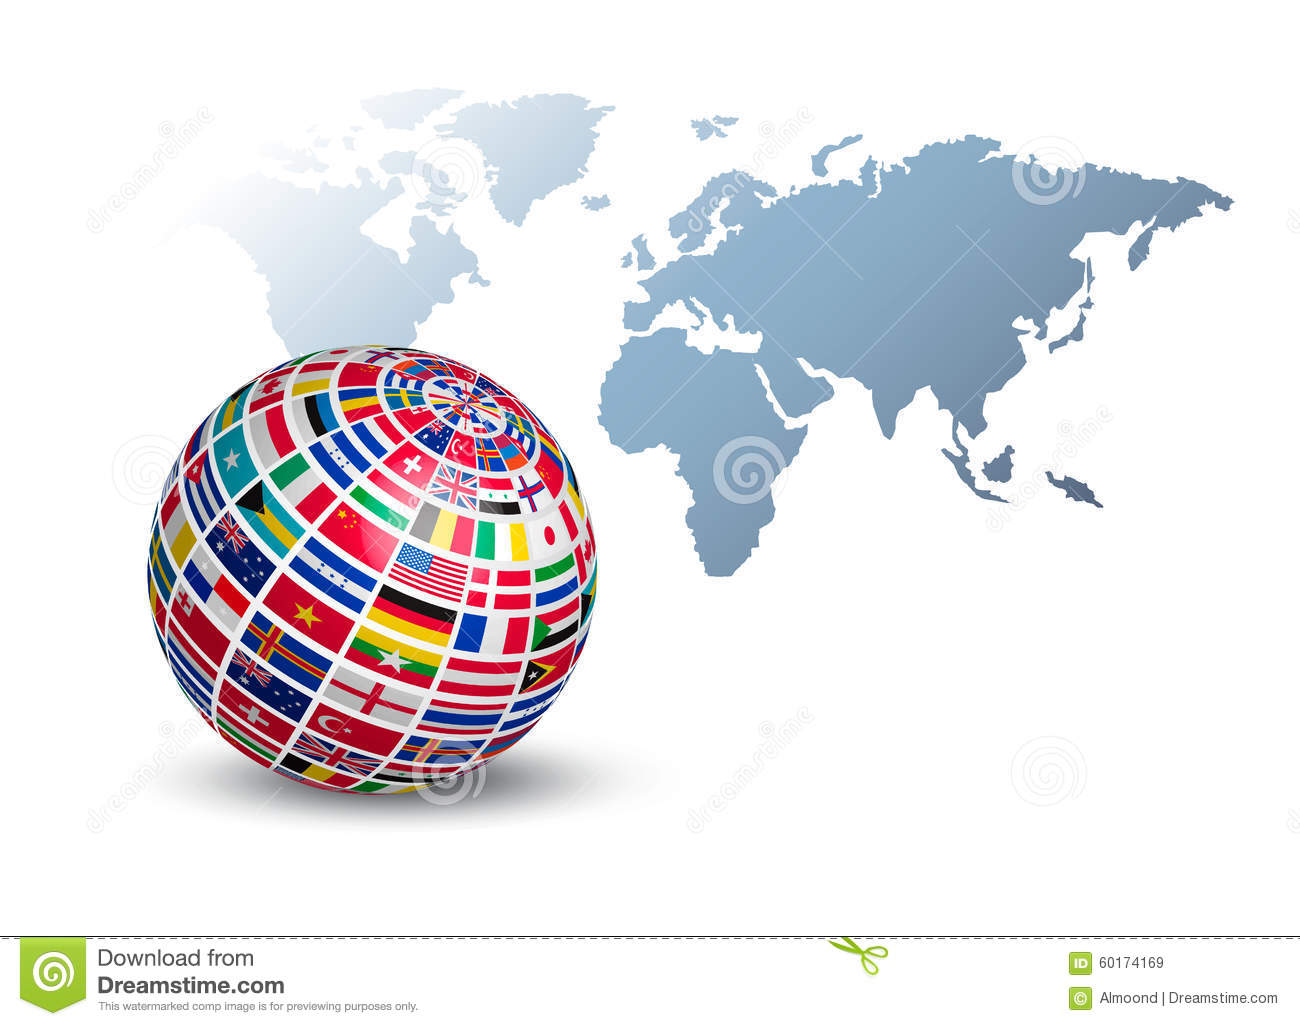 Globe made out of flags on a world map background stock vector globe made out of flags on a world map background gumiabroncs Gallery